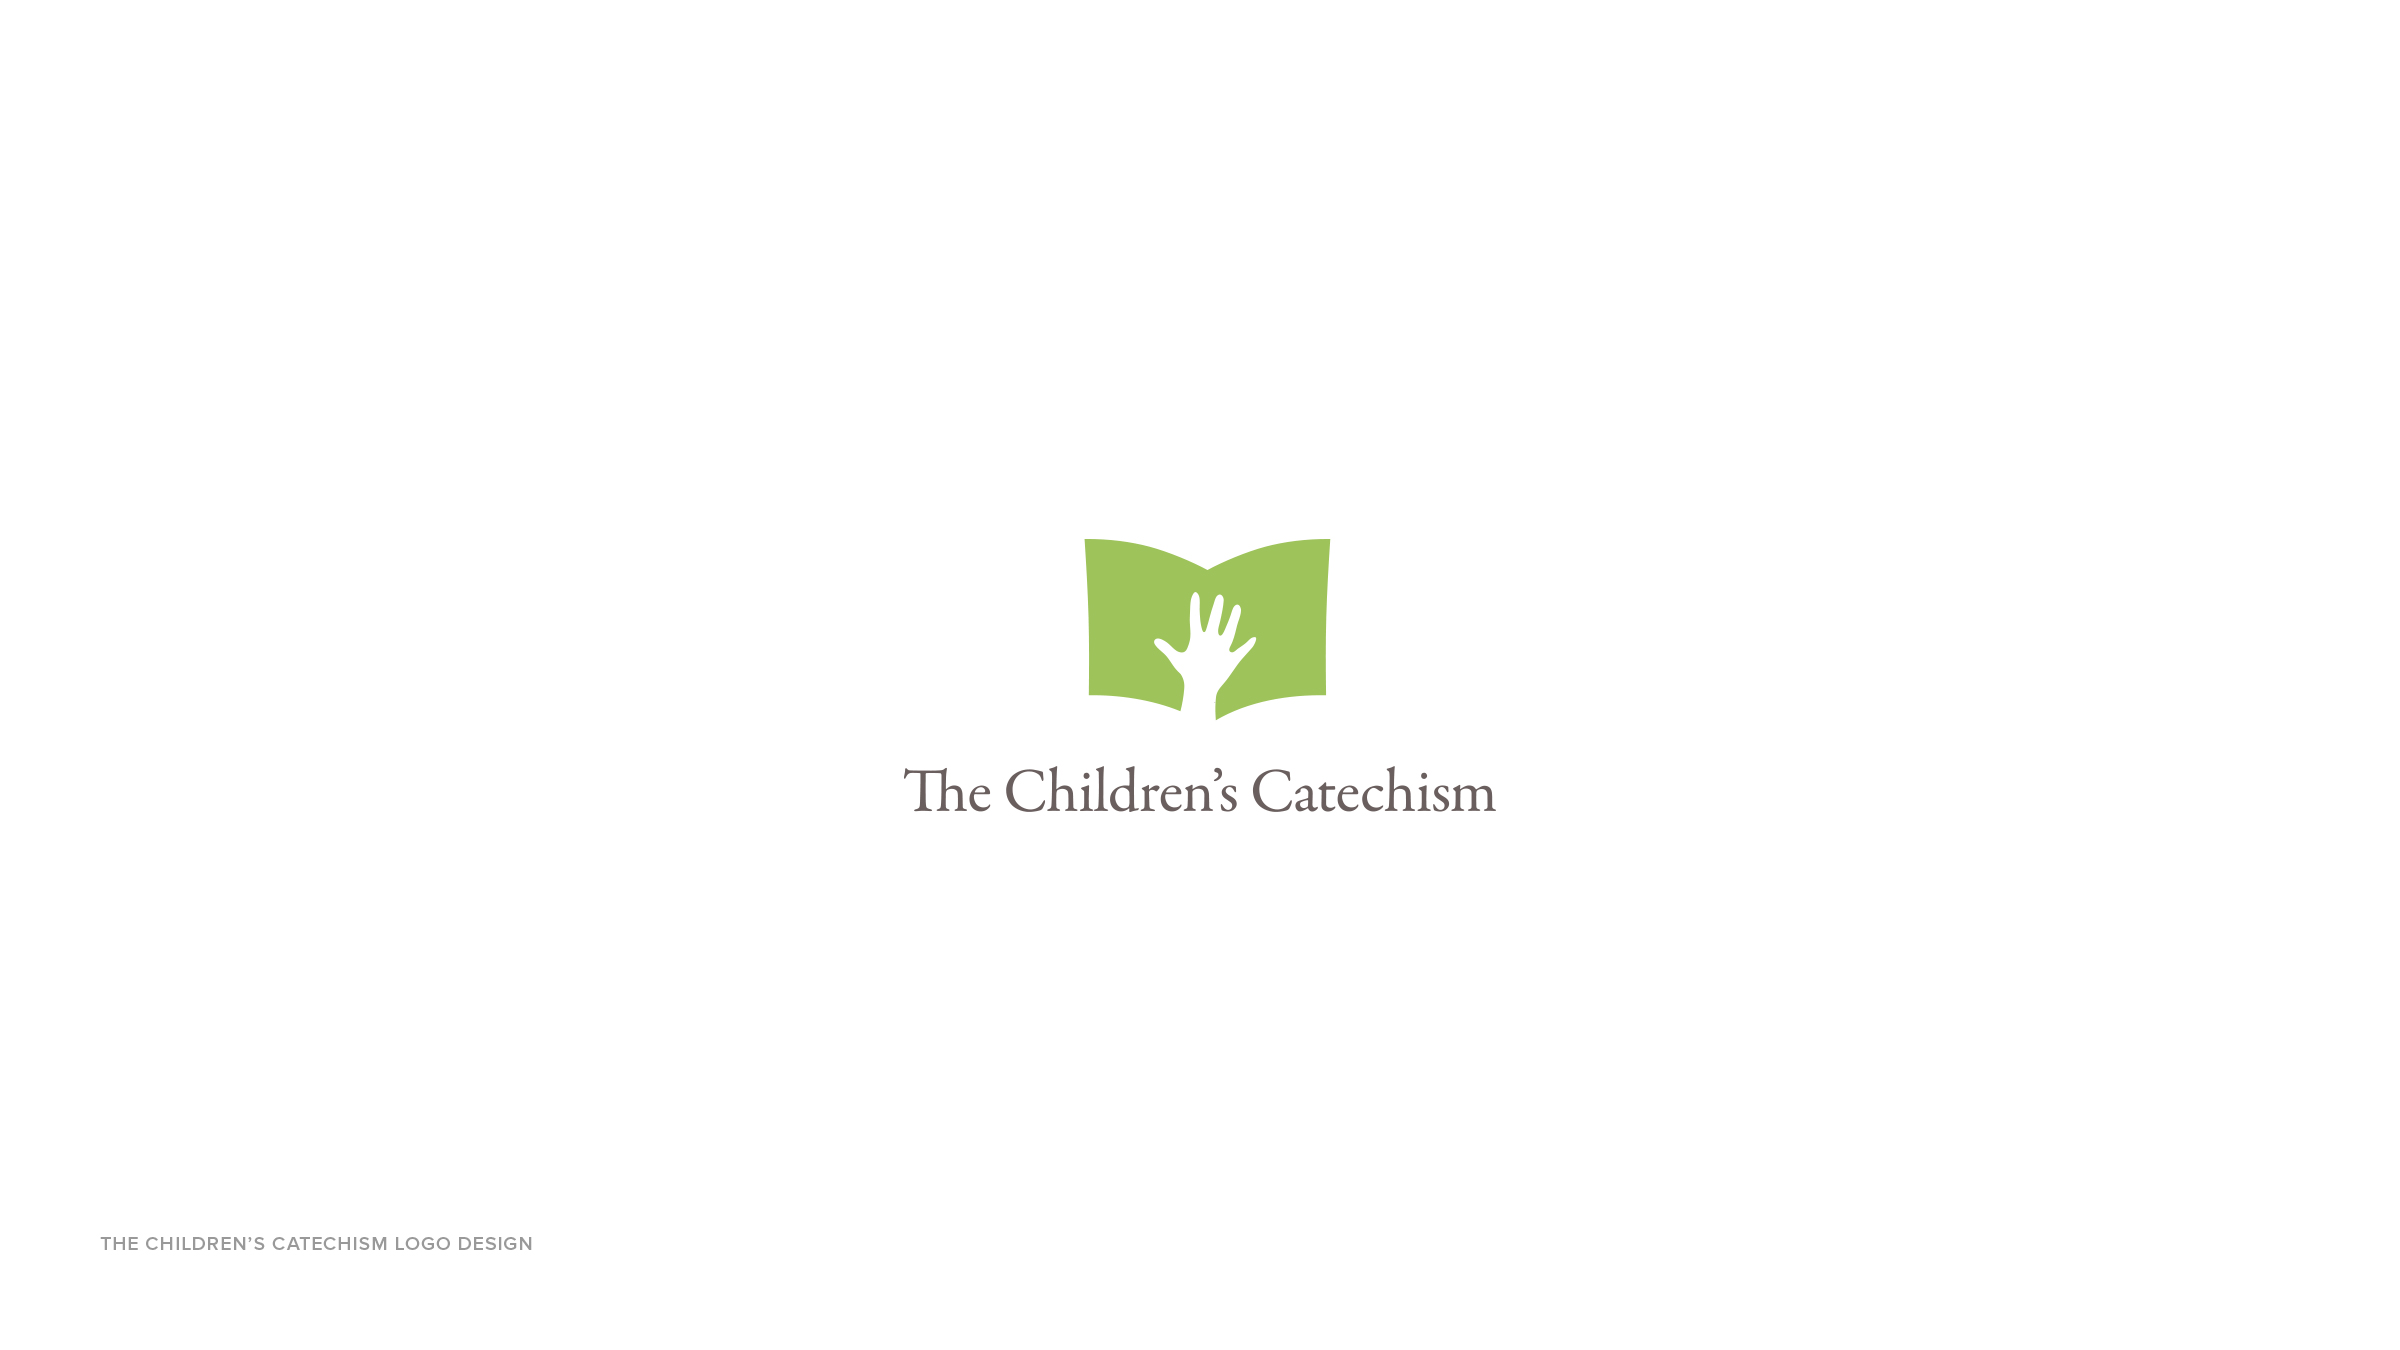 Logo-Design-Portfolio-v.1-Children's-Catechism